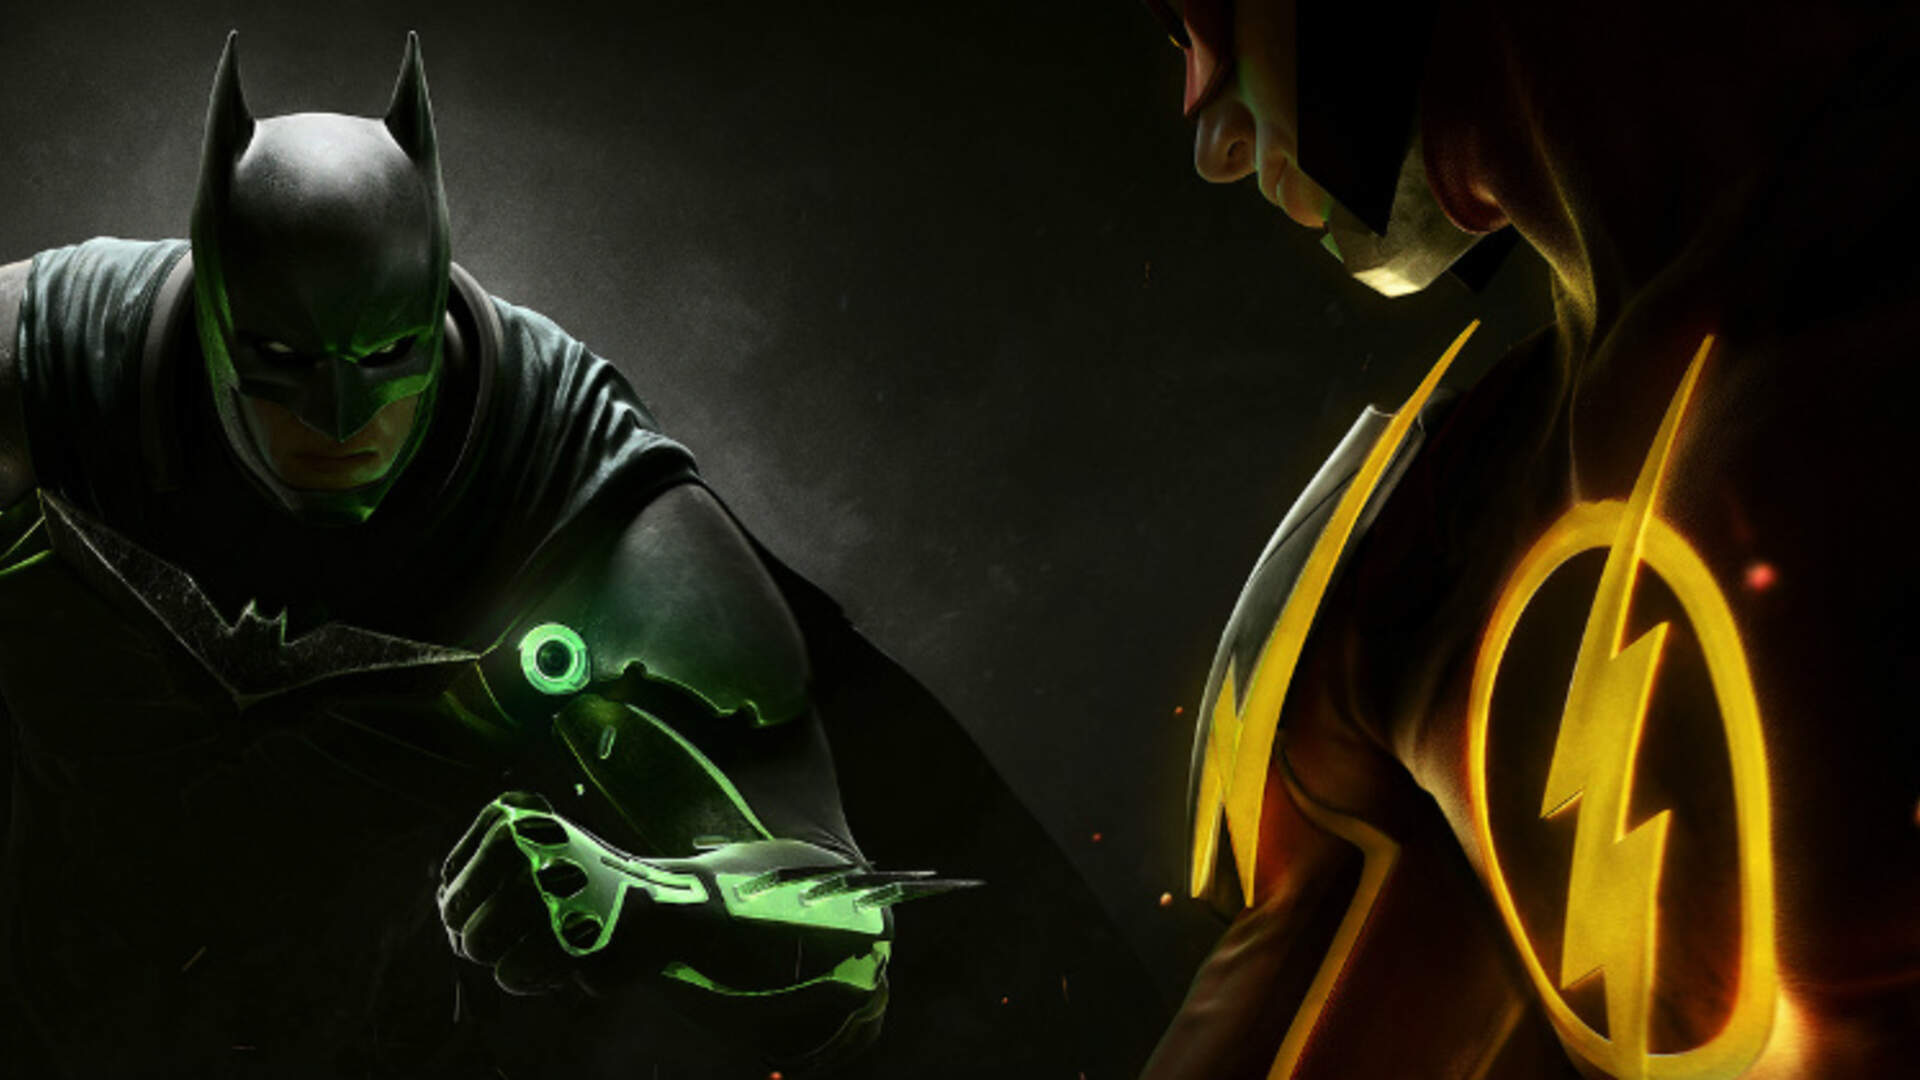 Injustice 2 Sees DC Heroes Gearing Up For More Angry Fighting in 2017